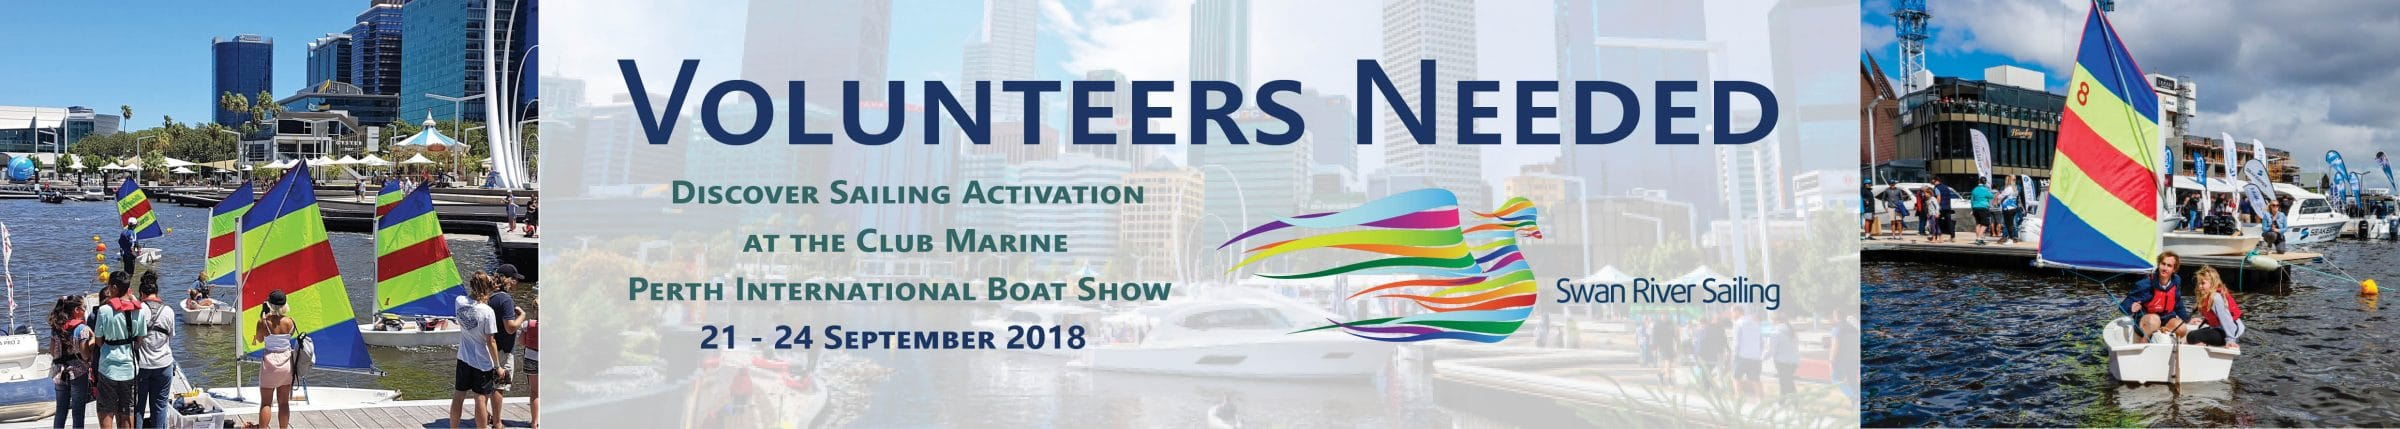 discover sailing volunteers needed for the perth international boat show